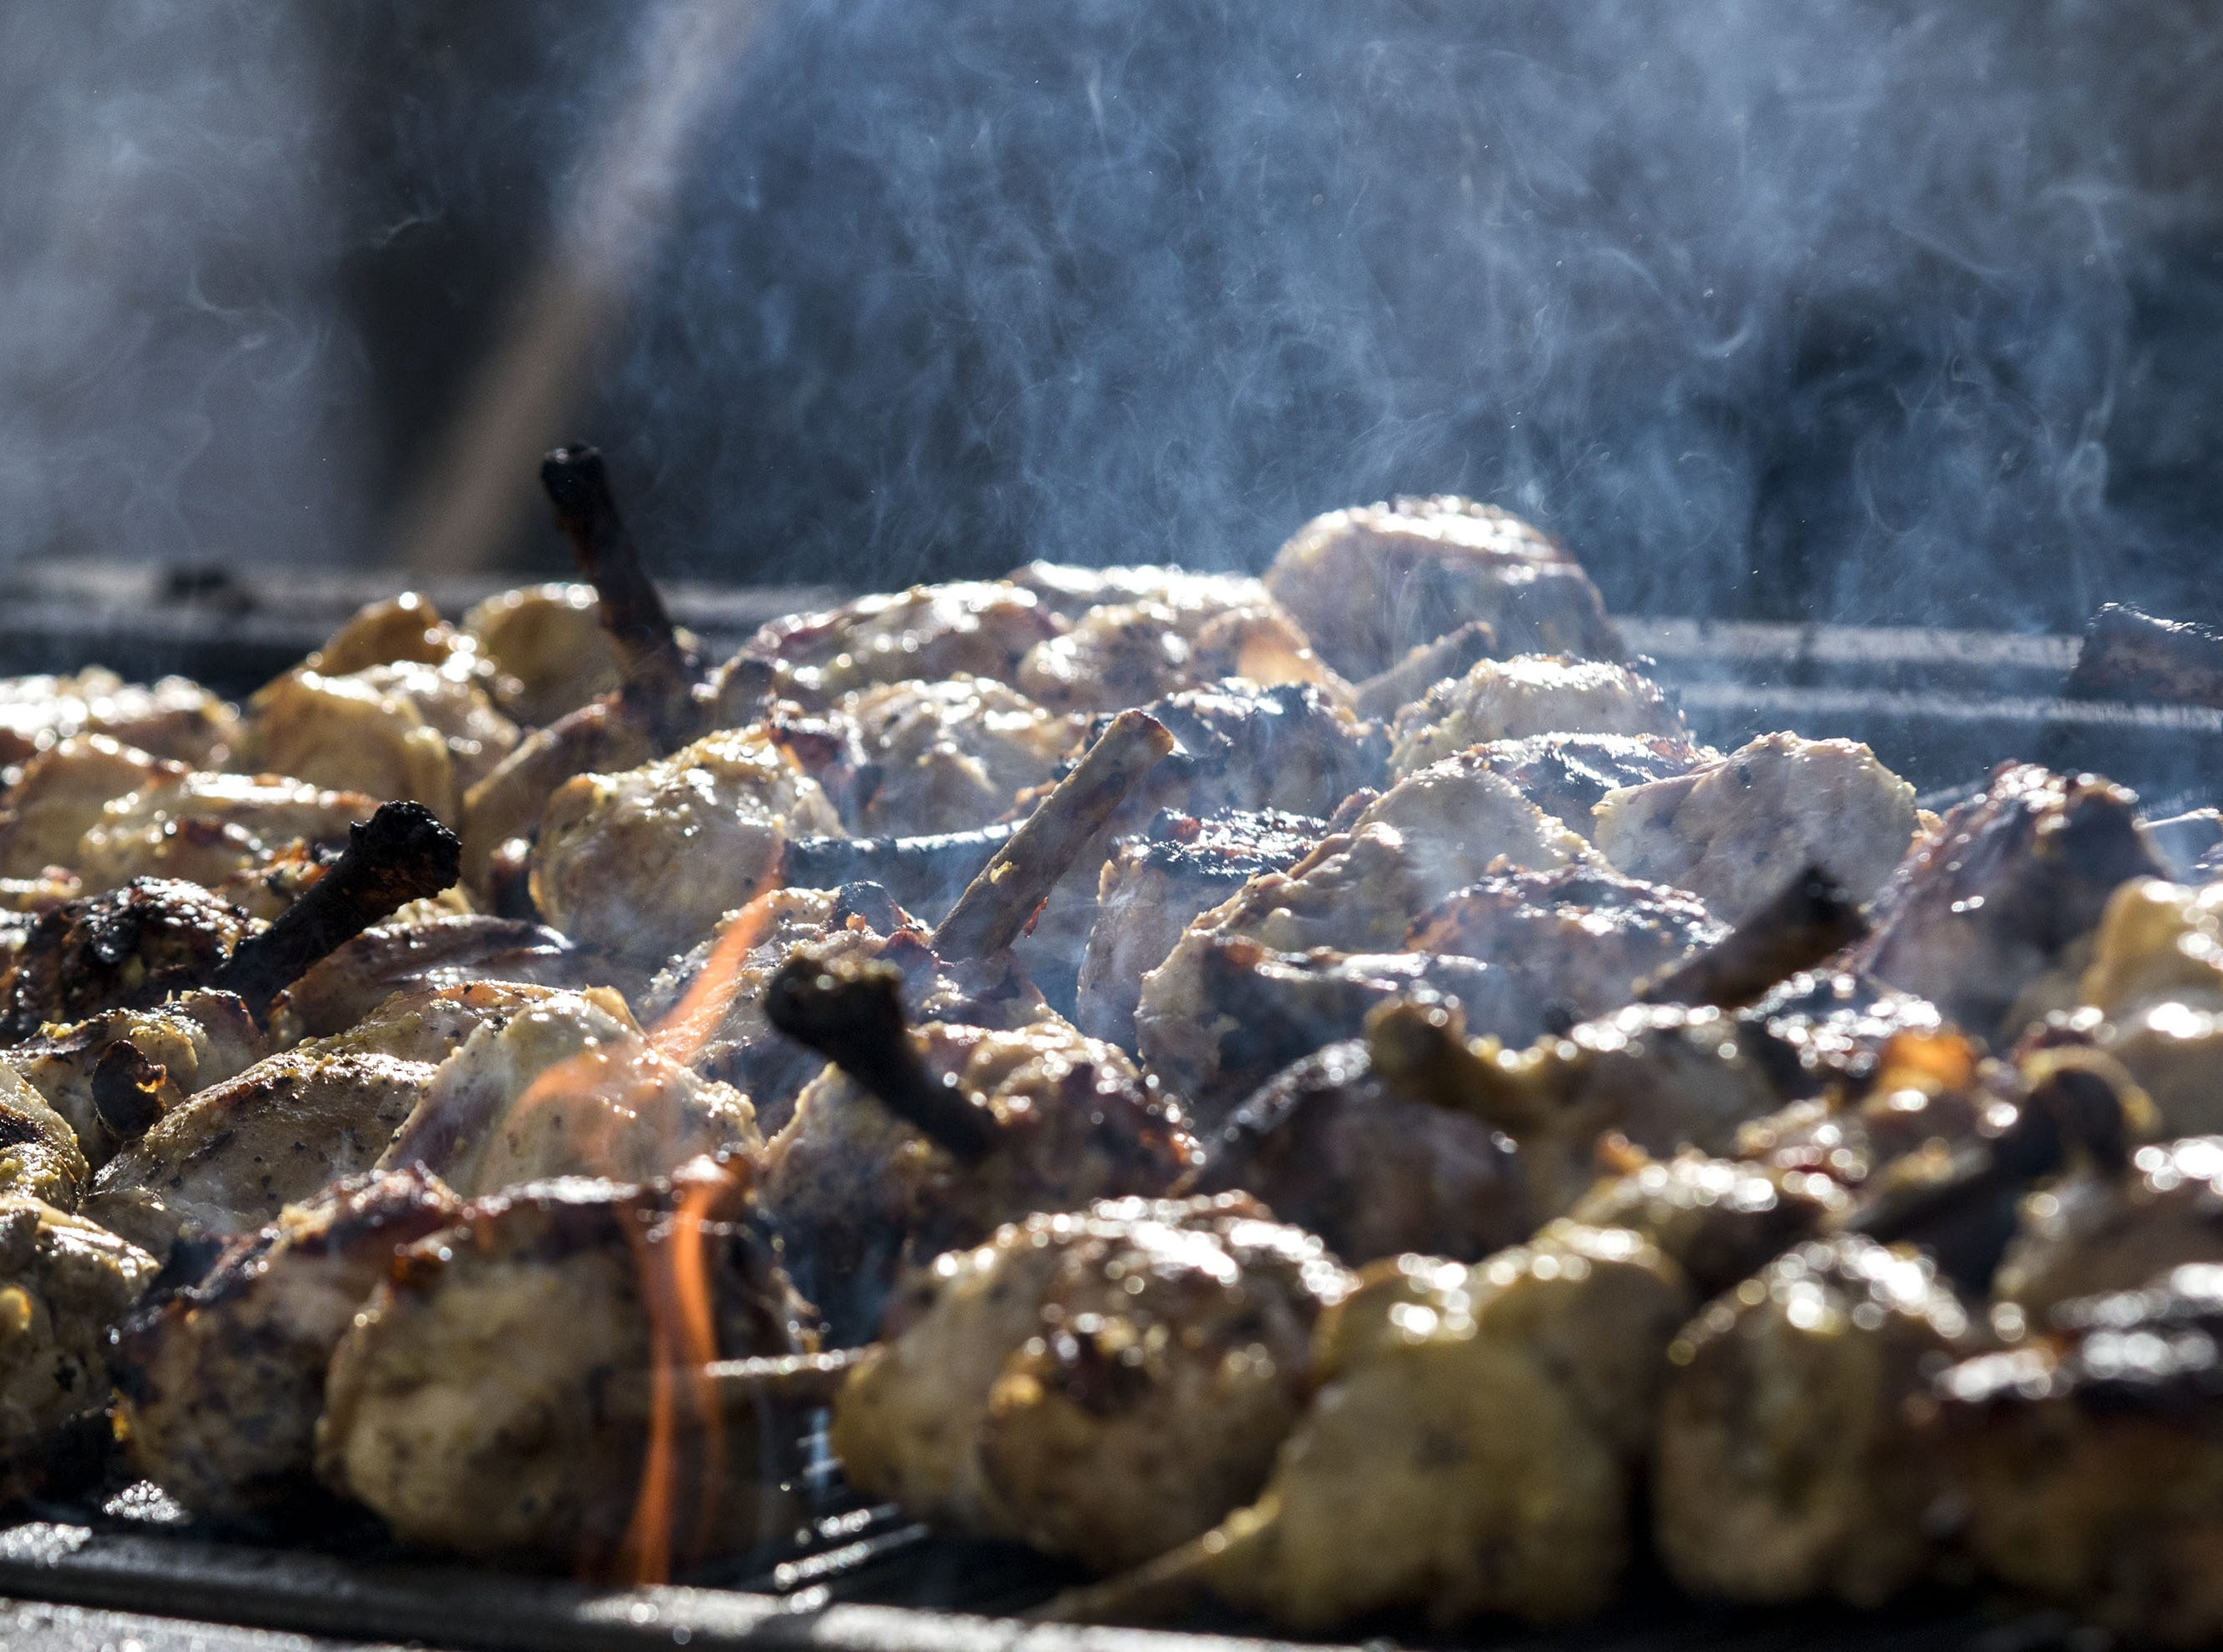 Behind the scenes chicken gets cooked up during the azcentral Wine & Food Experience at WestWorld of Scottsdale, Sunday, Nov. 4, 2018.